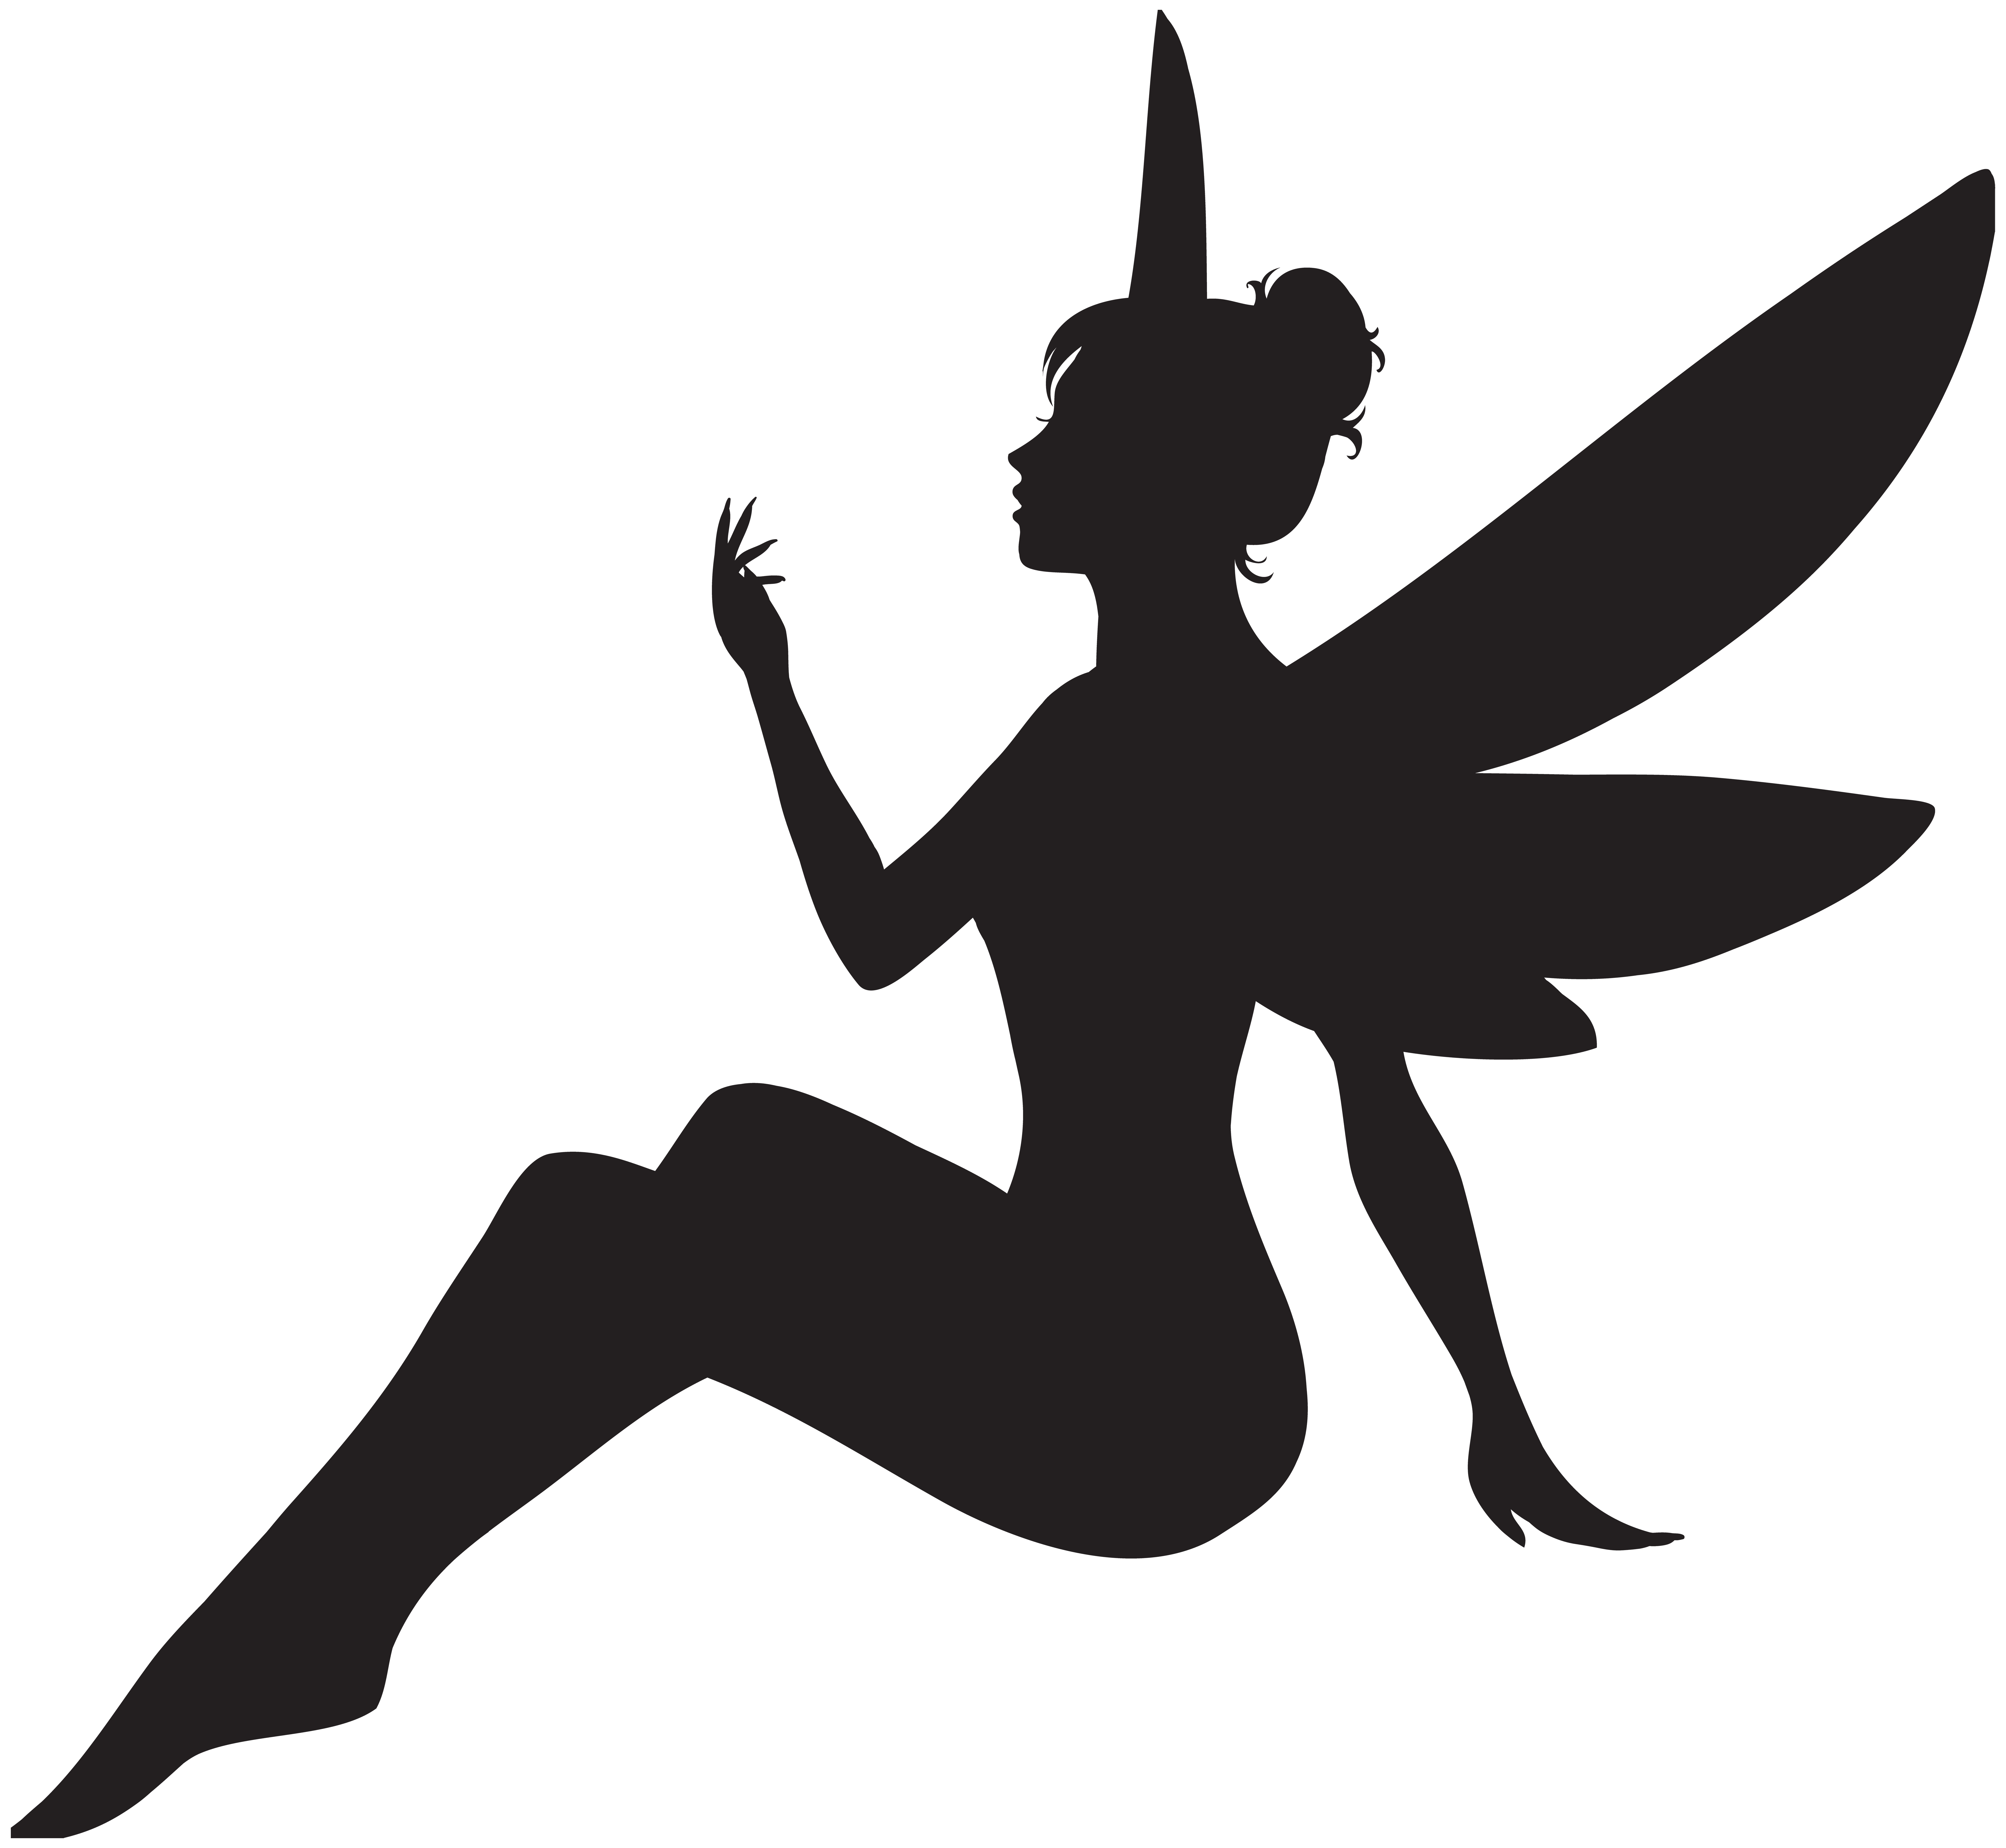 Free clipart fairy. Silhouette at getdrawings com